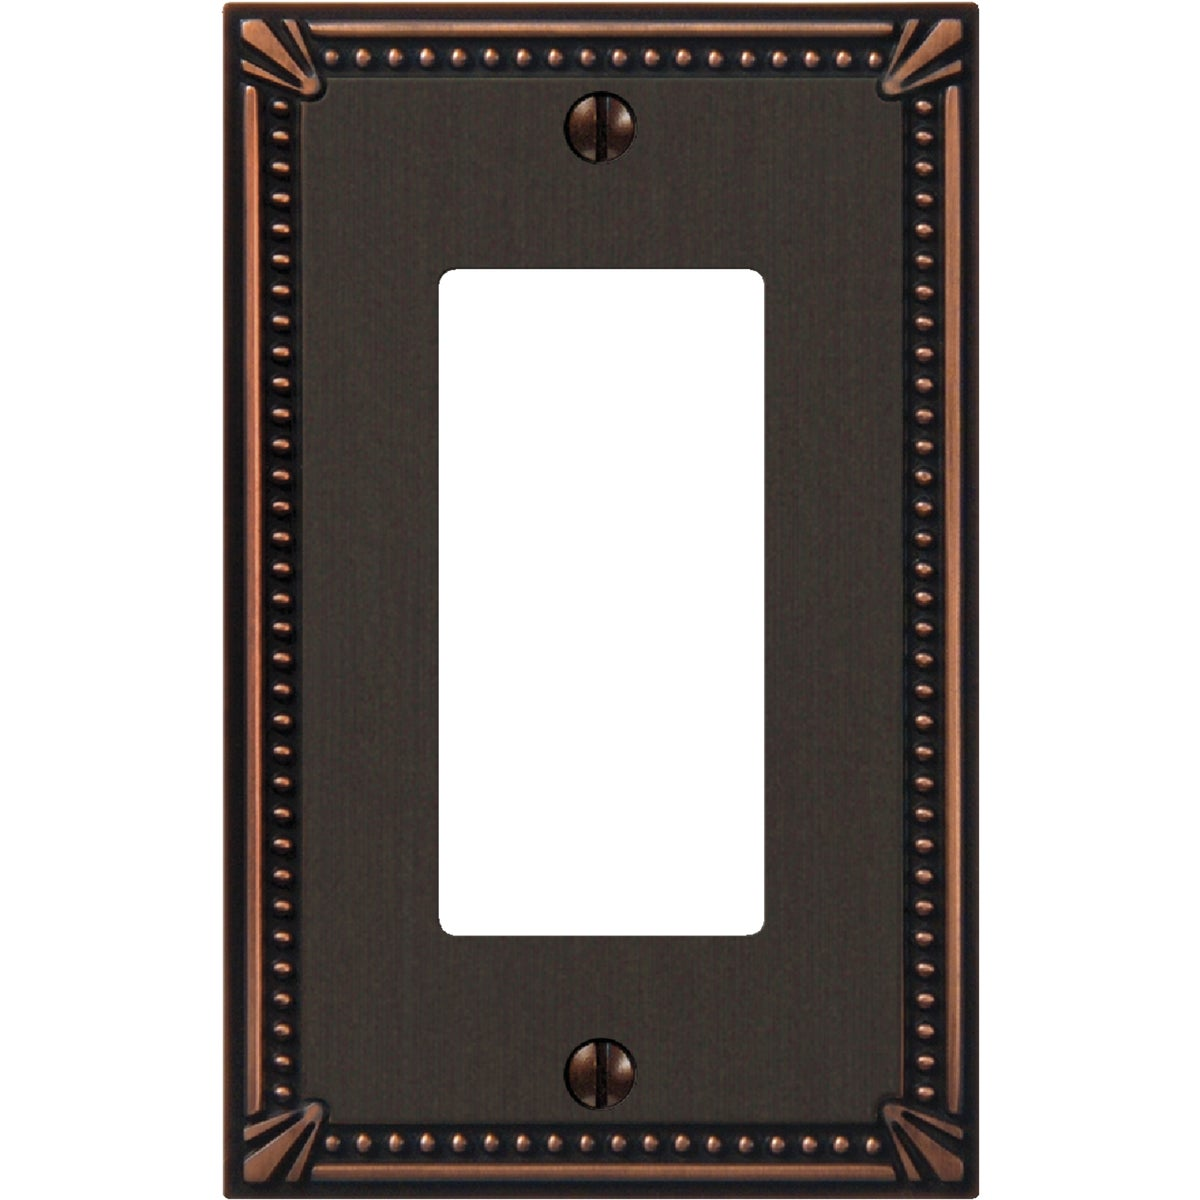 AB GFI WALLPLATE - 3017AZ by Jackson Deerfield Mf